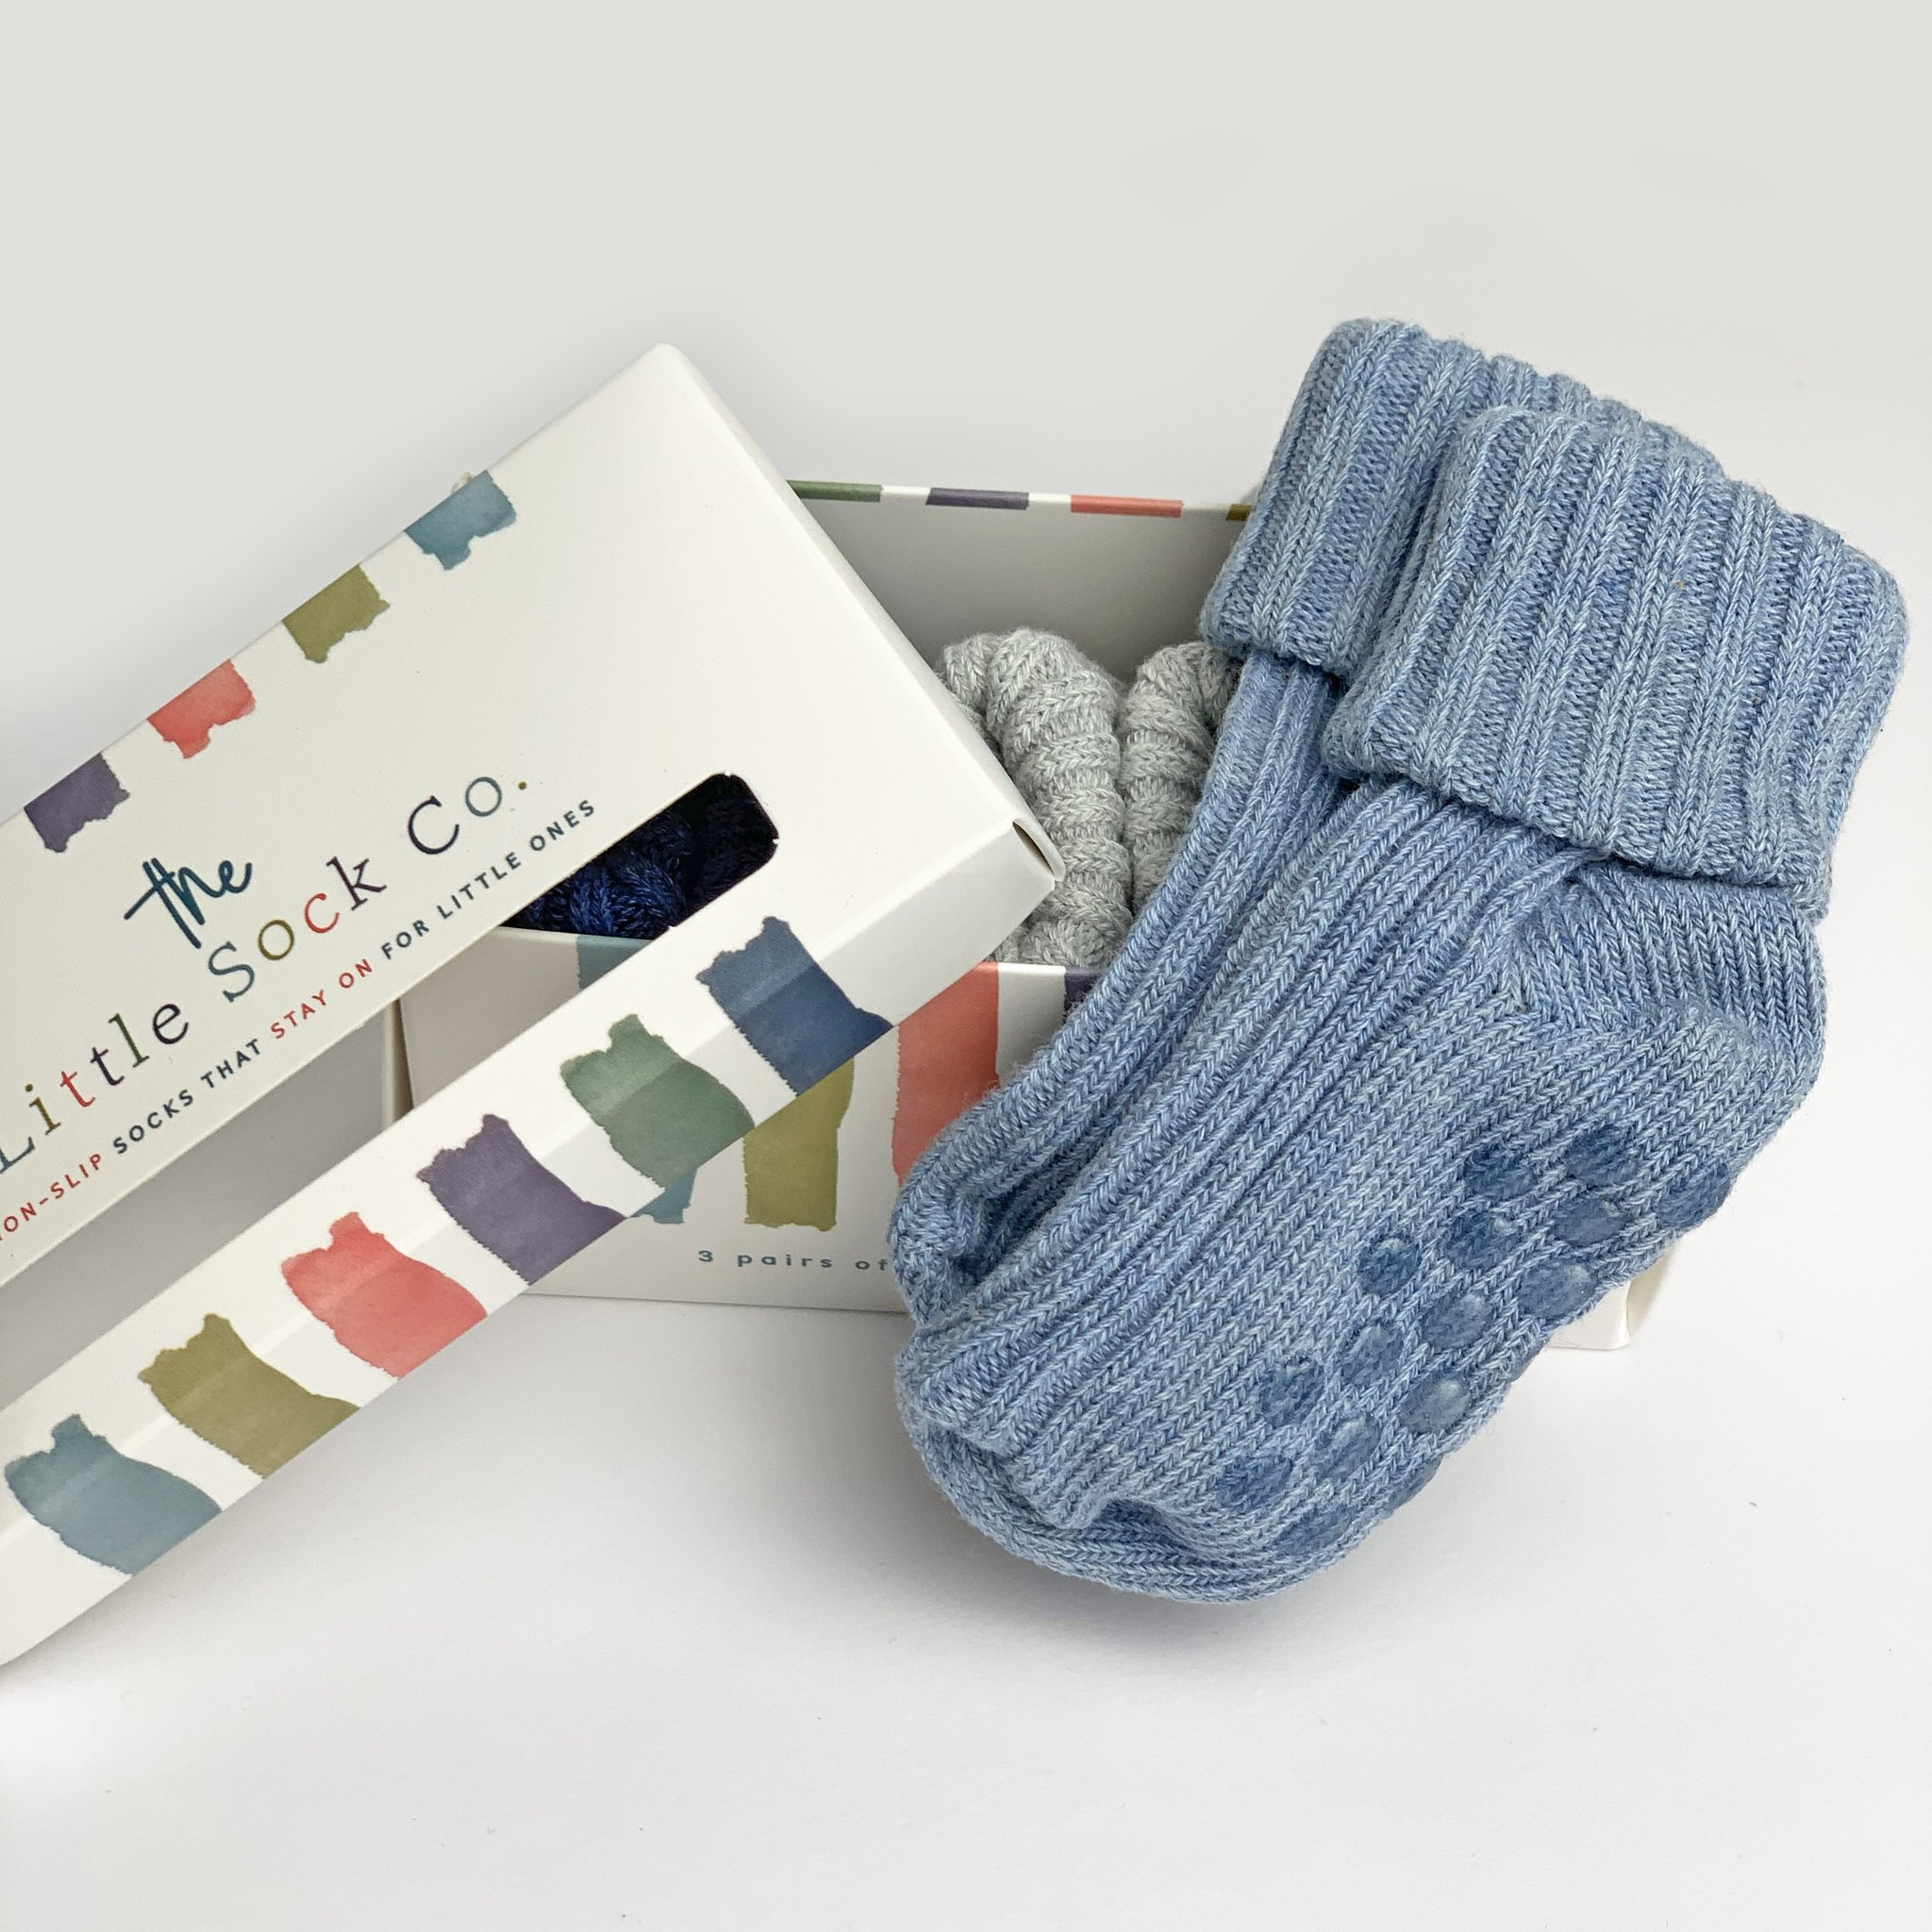 NON-SLIP STAY ON COTTON RIBBIES (3PAIRS) BABY BLUE, CLOUD AND NAVY